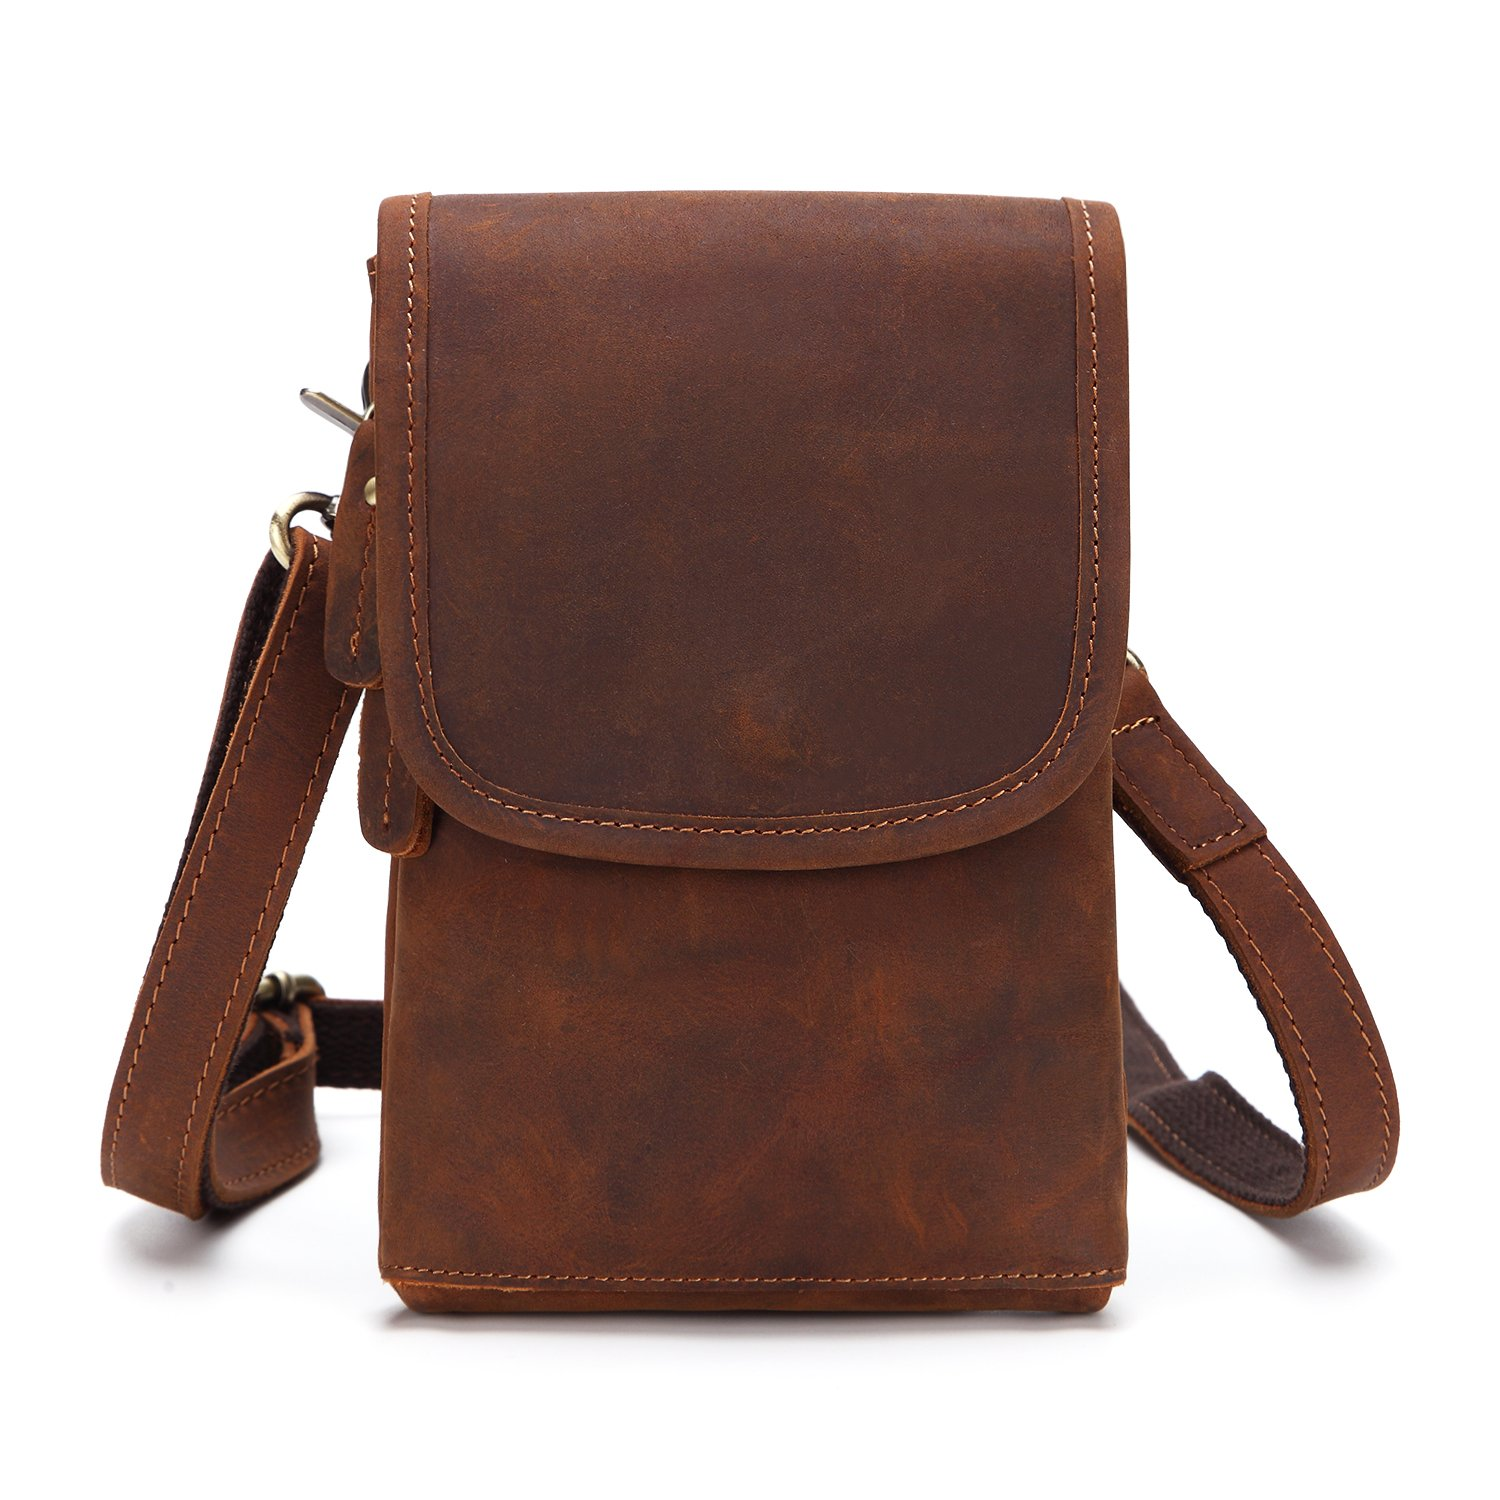 Leather pockets, belts, men's shoulder bags, first layer of leather, retro small shoulders, diagonal bags, mobile phone bags